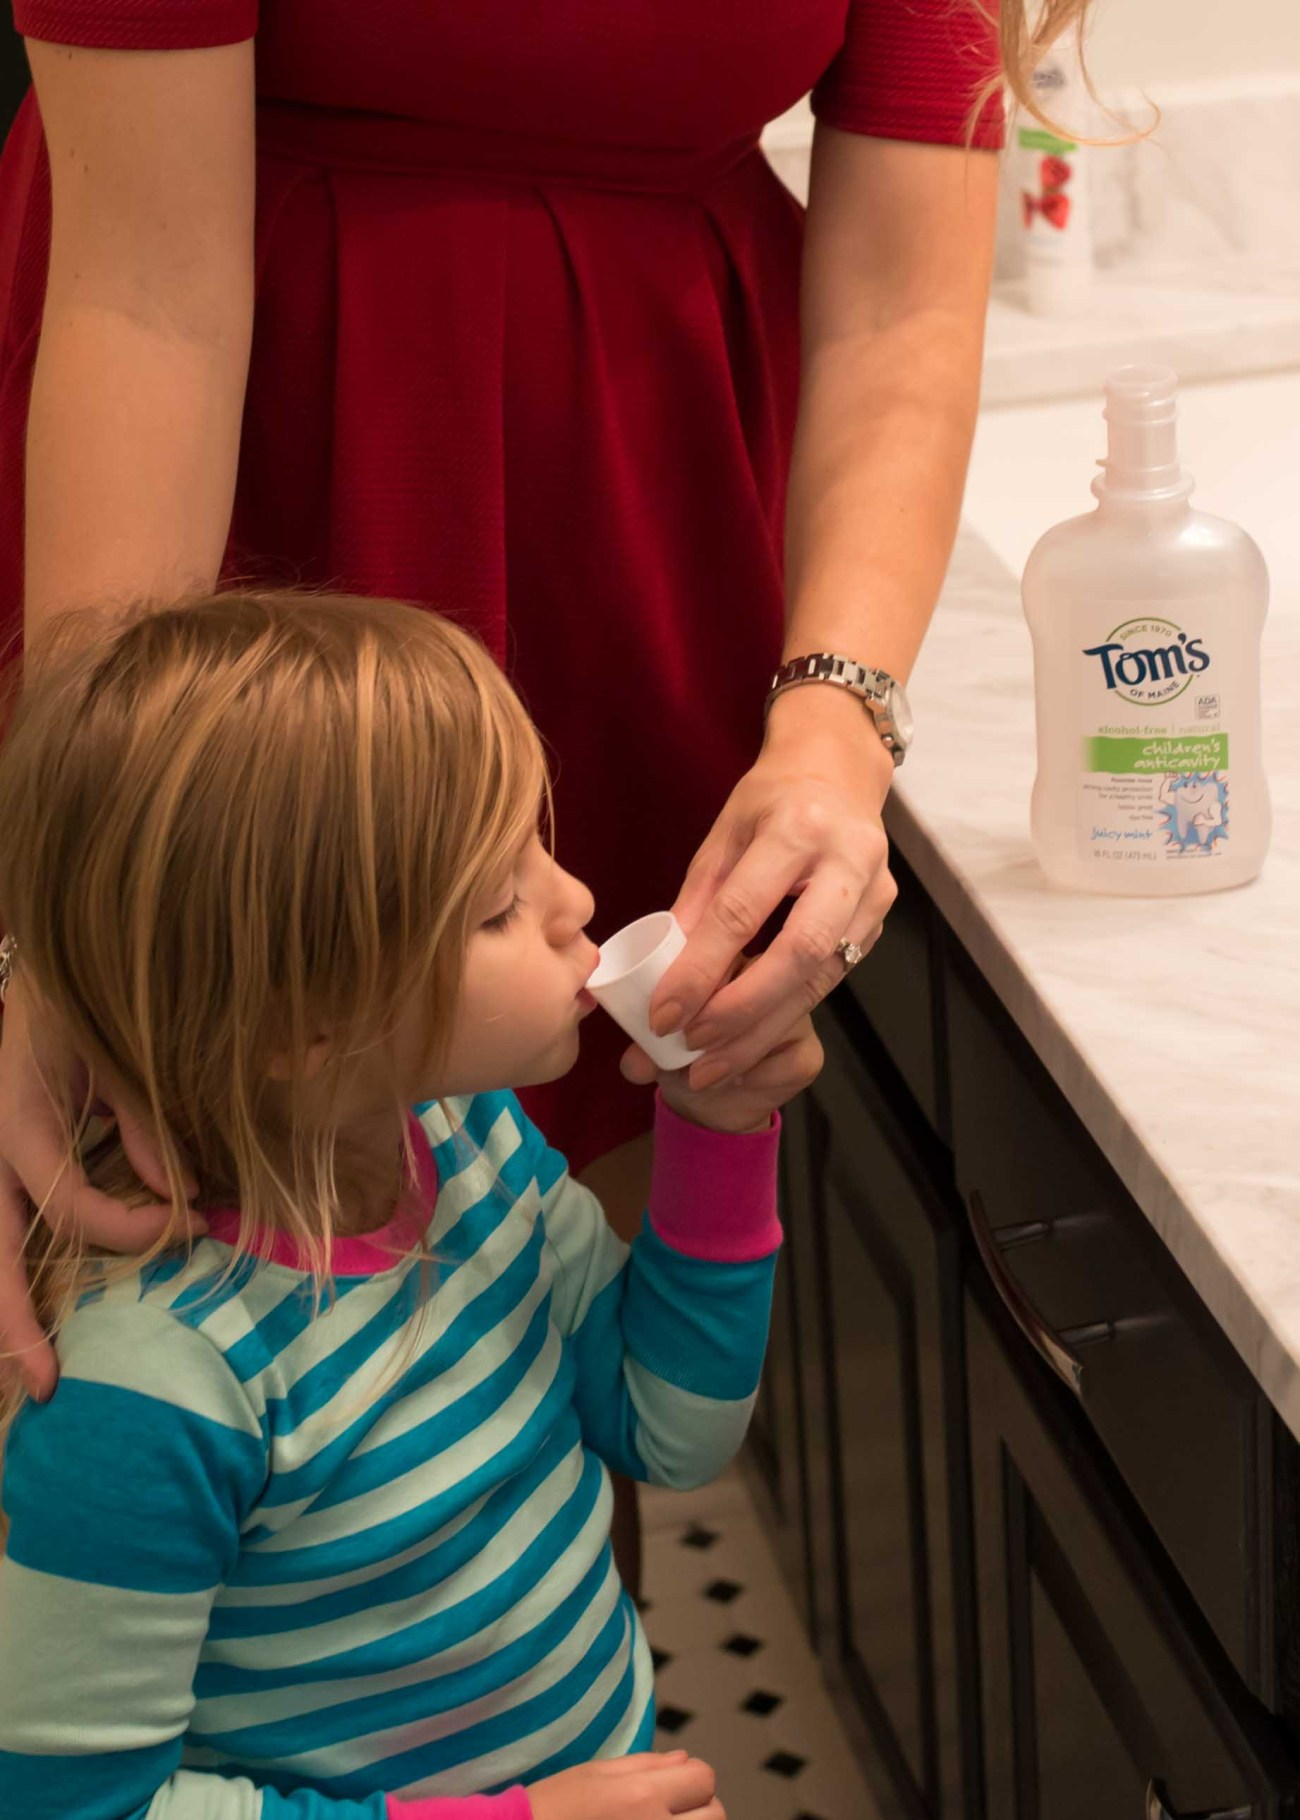 Tom's mouthwash toddlers